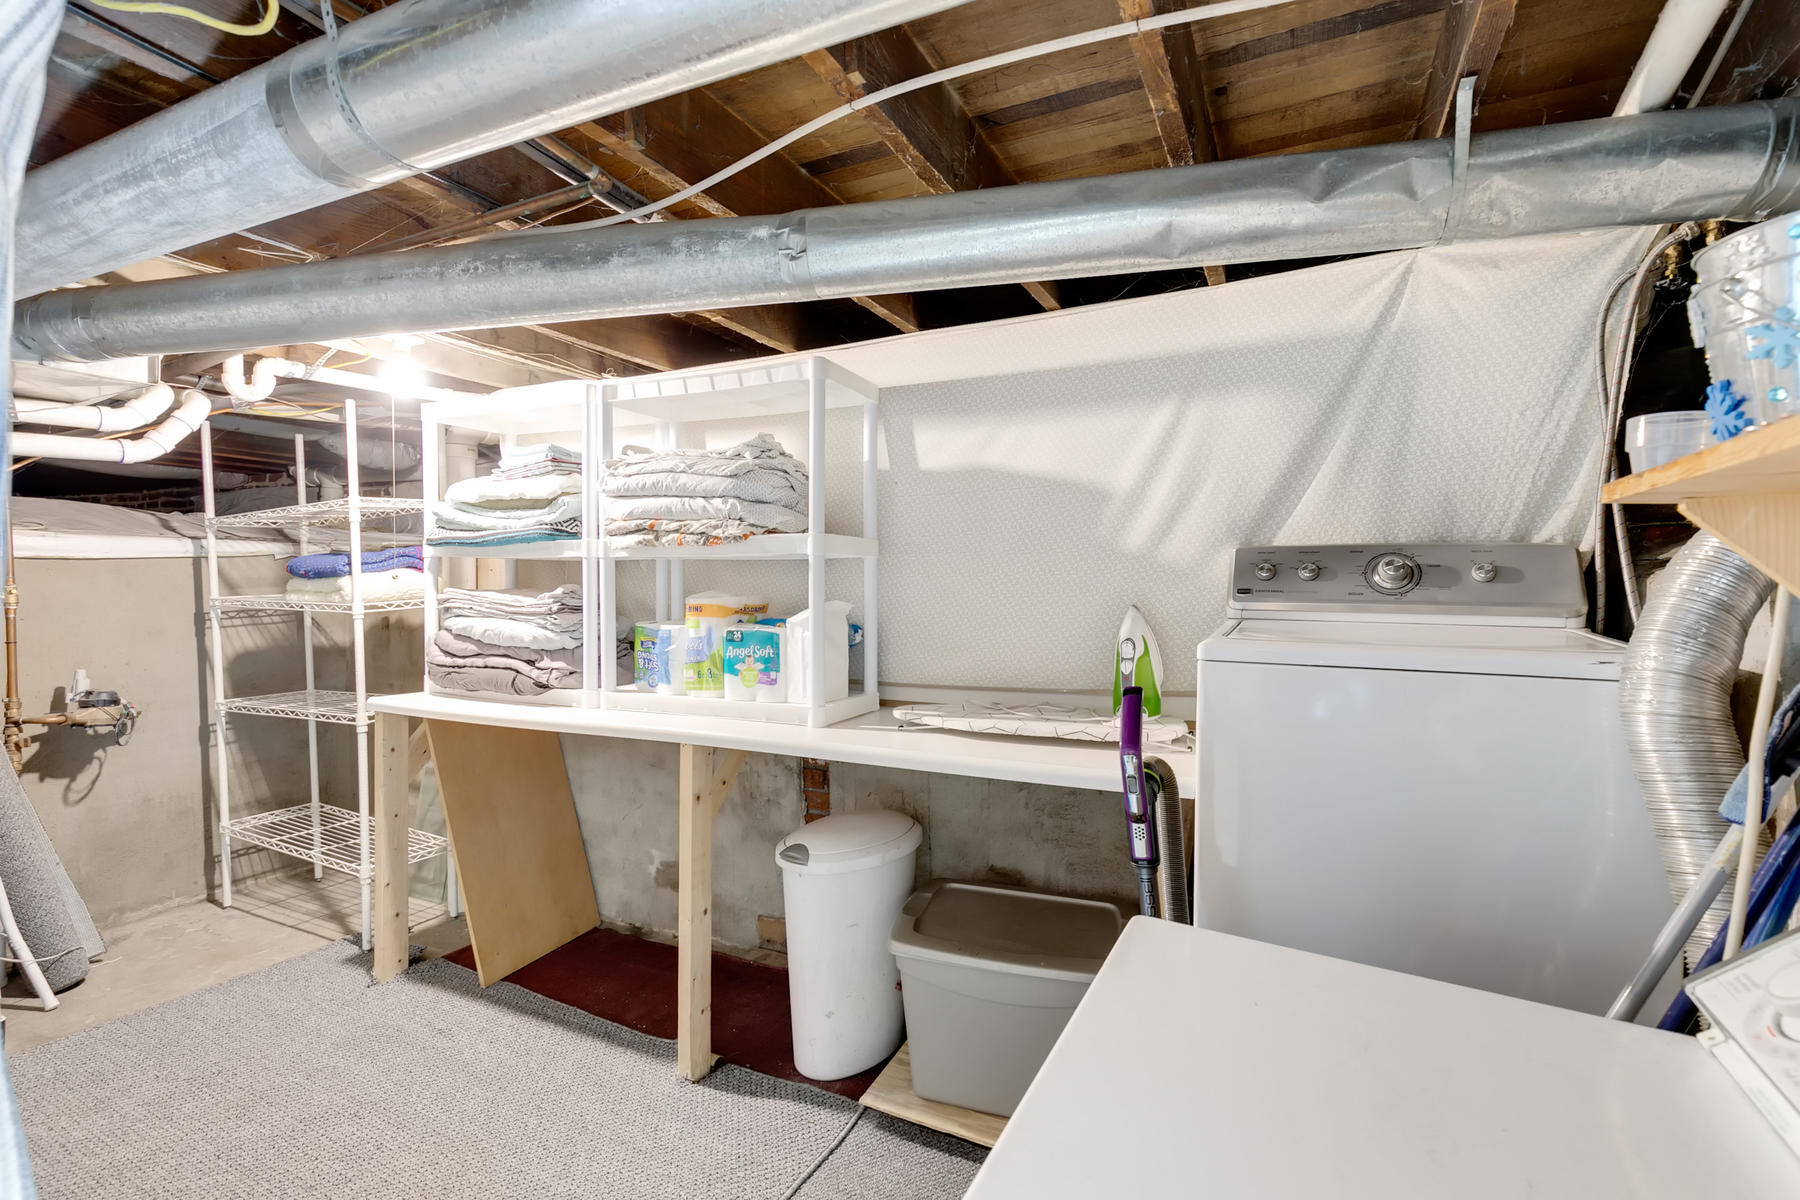 3230 S Lincoln St Englewood CO-028-032-28-MLS_Size.jpg